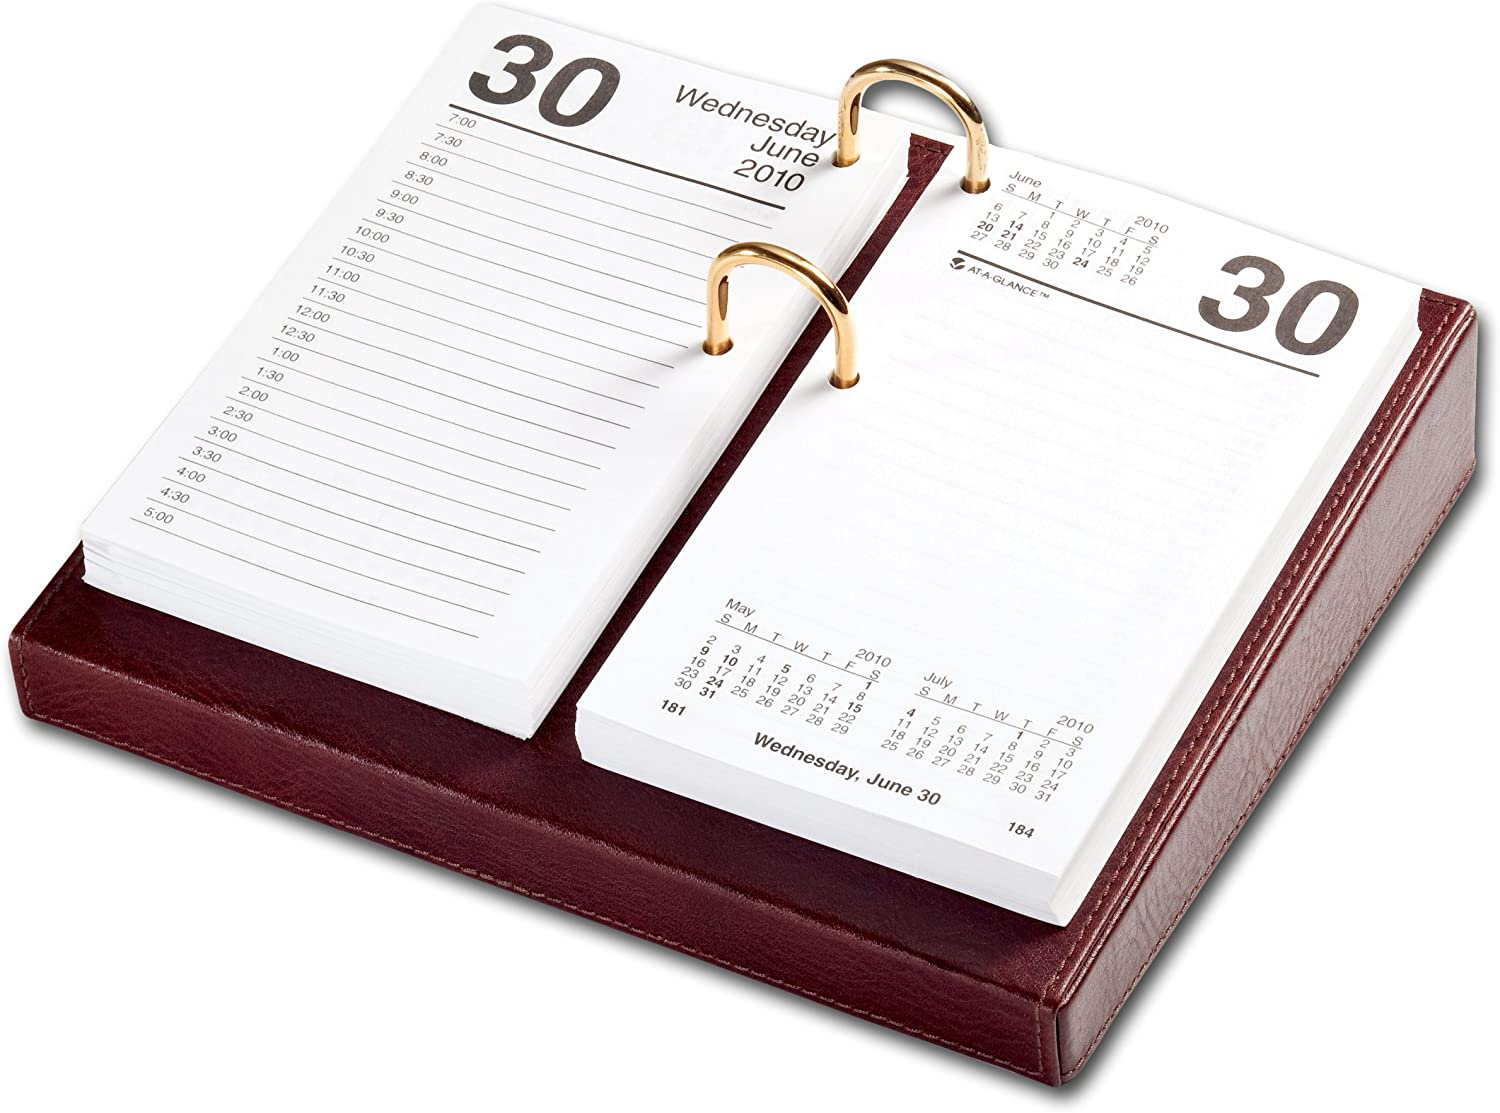 3.5-Inch by 6-Inch Dacasso Black Leather Desktop Calendar Holder with Gold Bolts